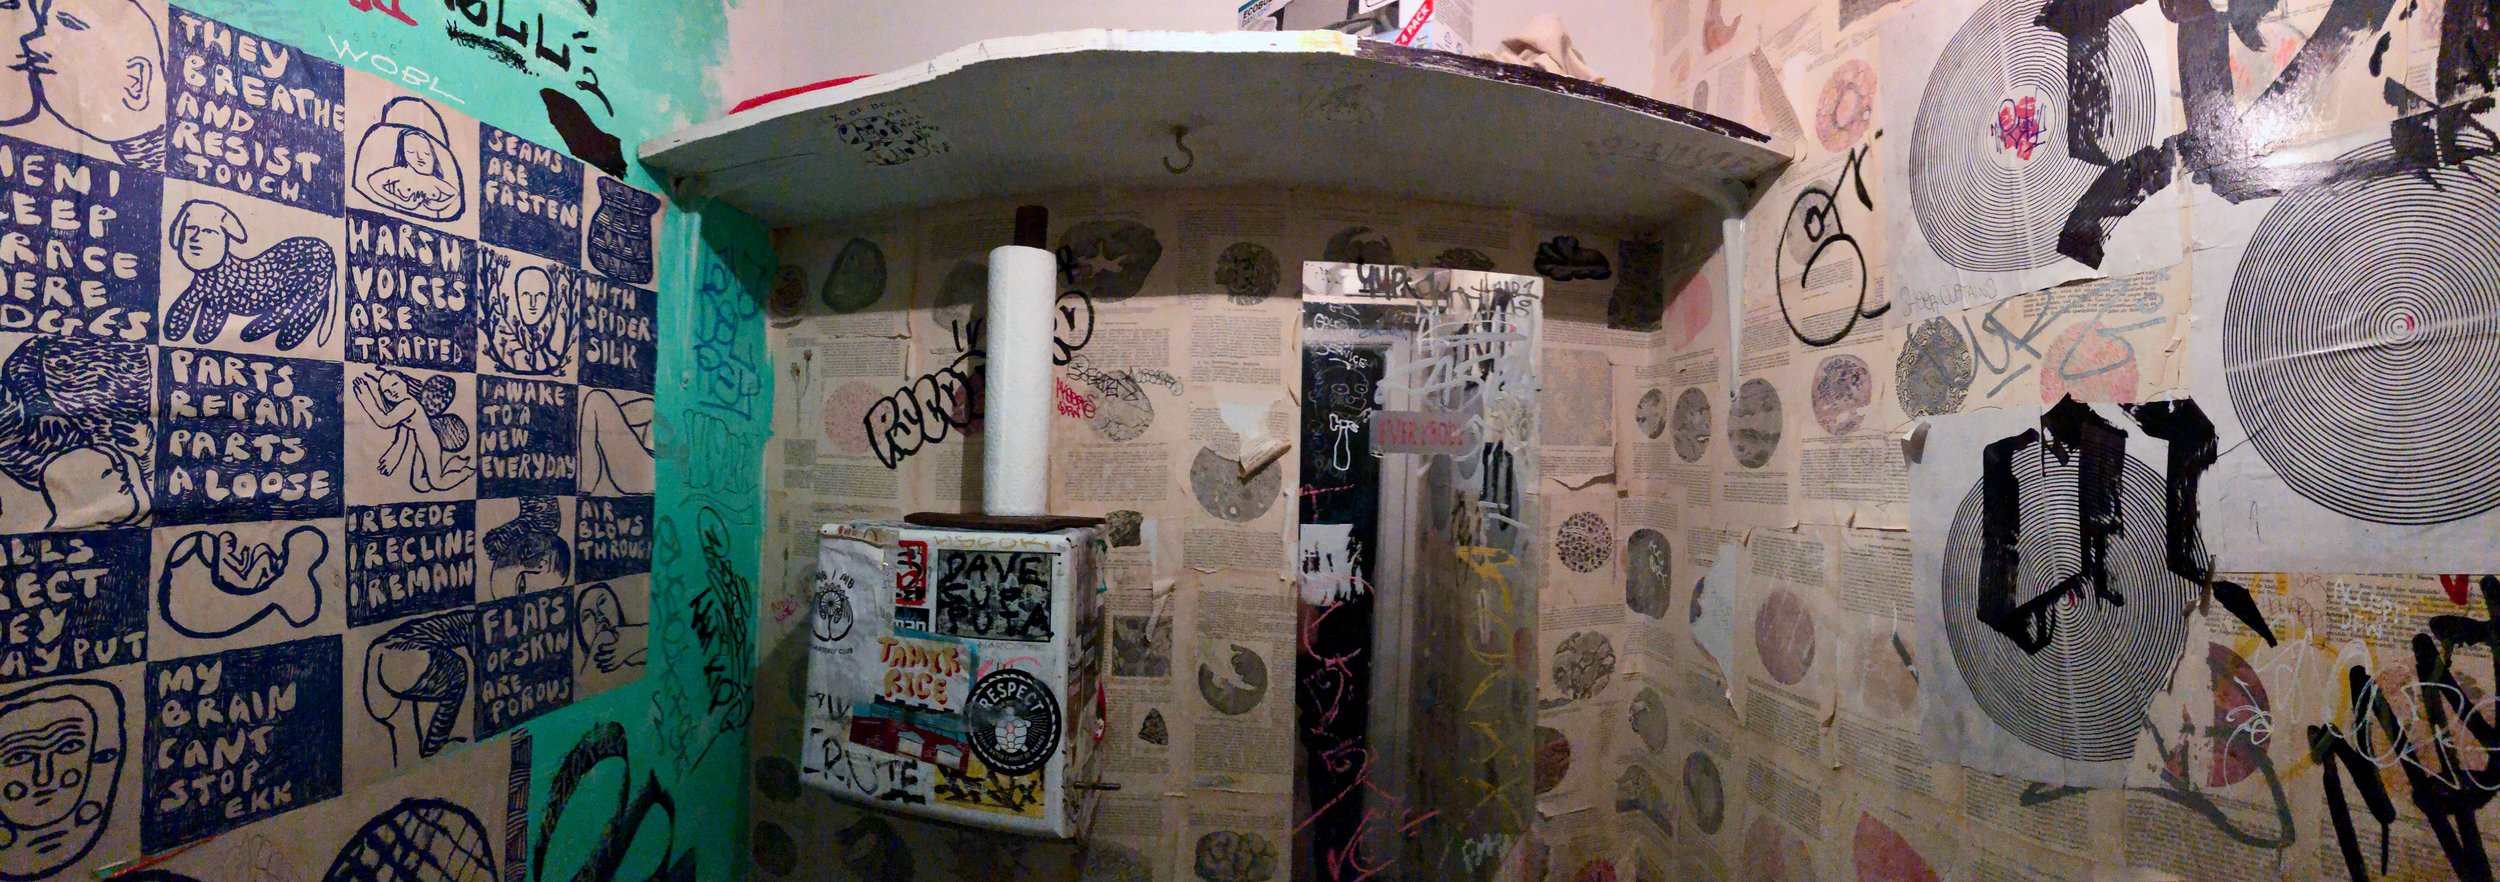 The bathroom at Molasses Books in Bushwick, Brooklyn.